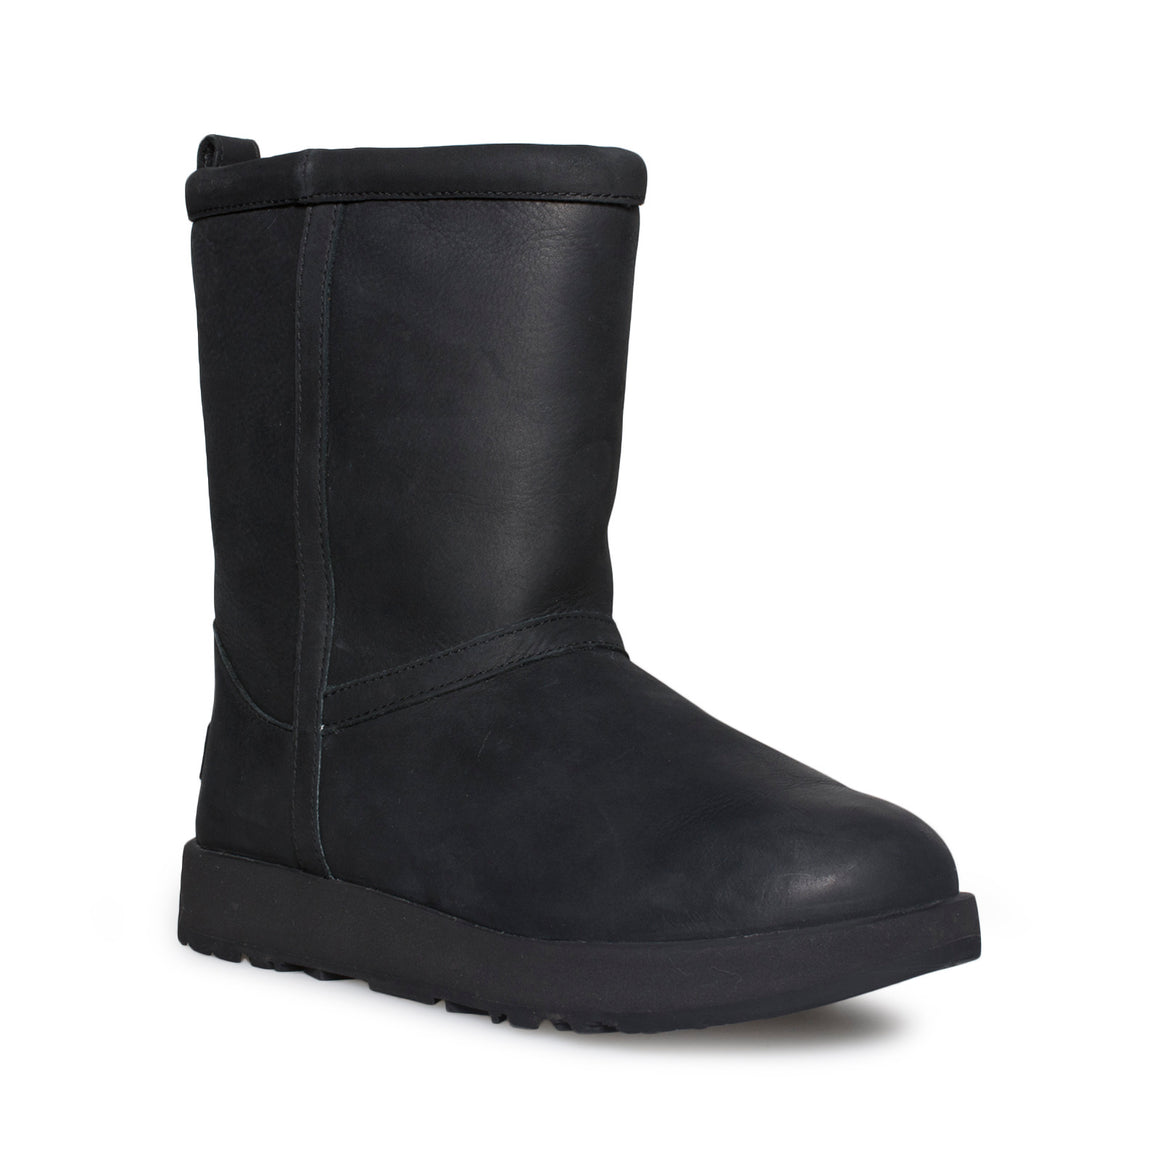 UGG Classic Short Leather Waterproof Black Boots - Women's